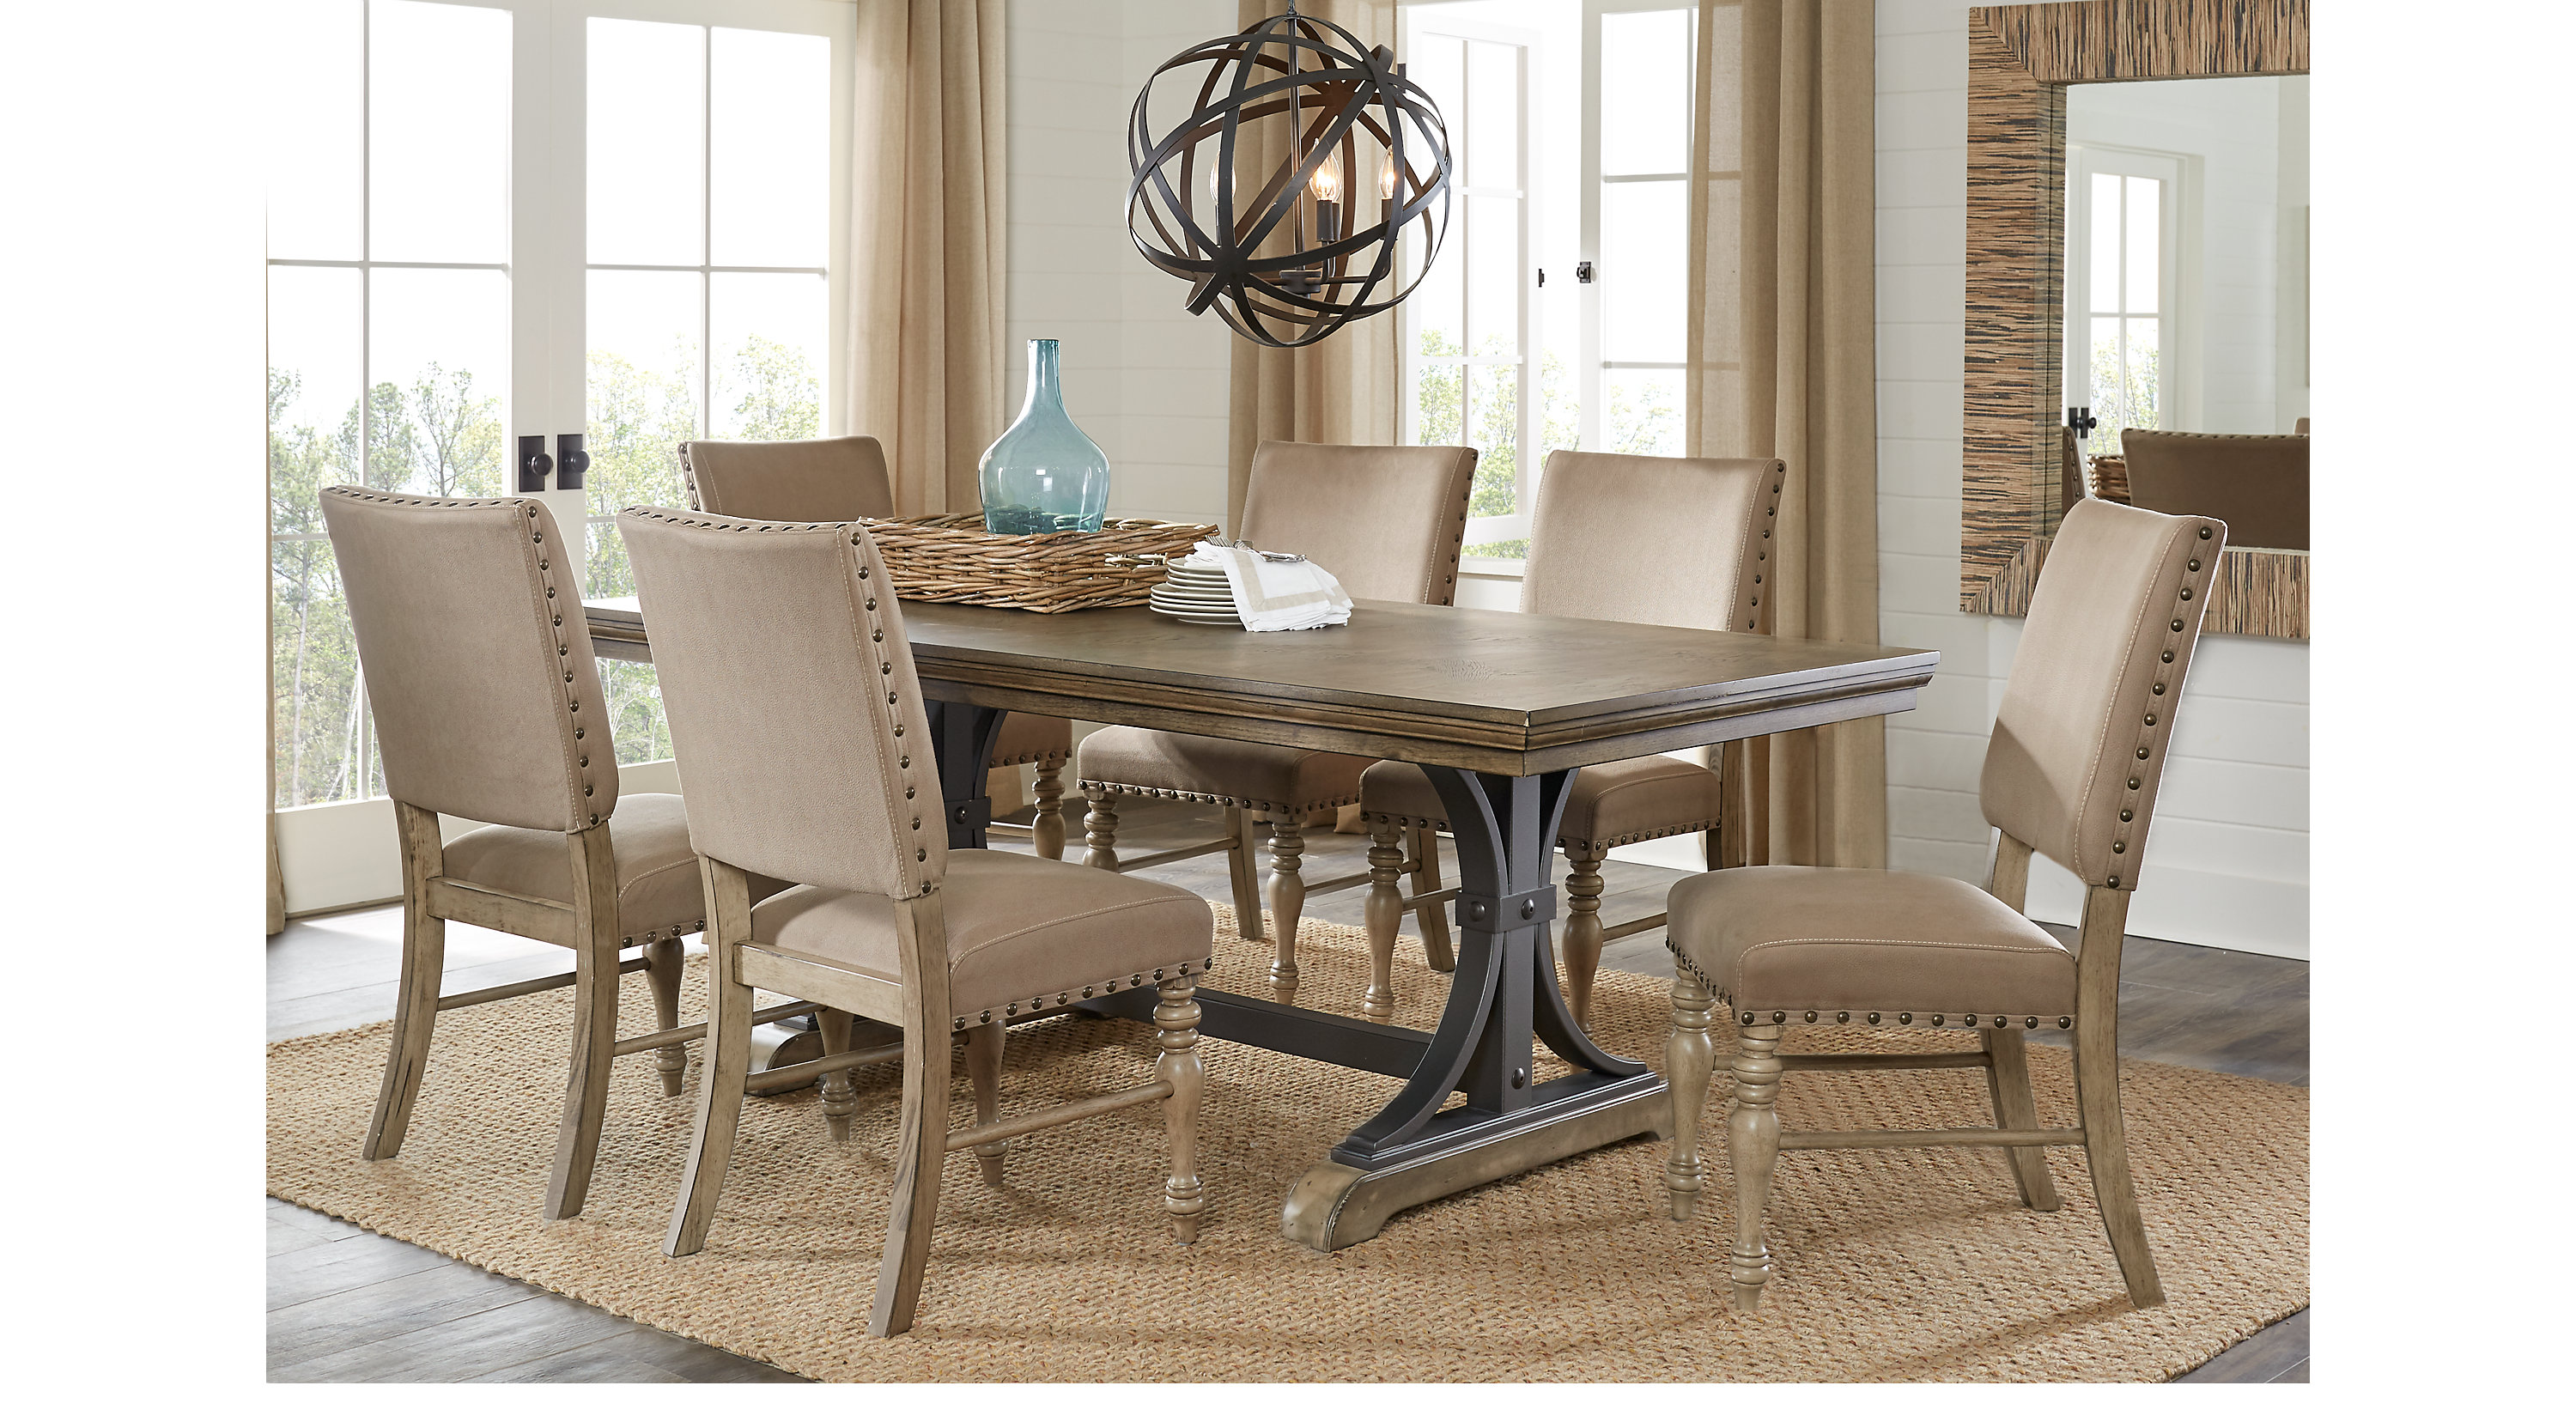 Sierra Vista Driftwood brownish gray 5 Pc Rectangle Dining Set